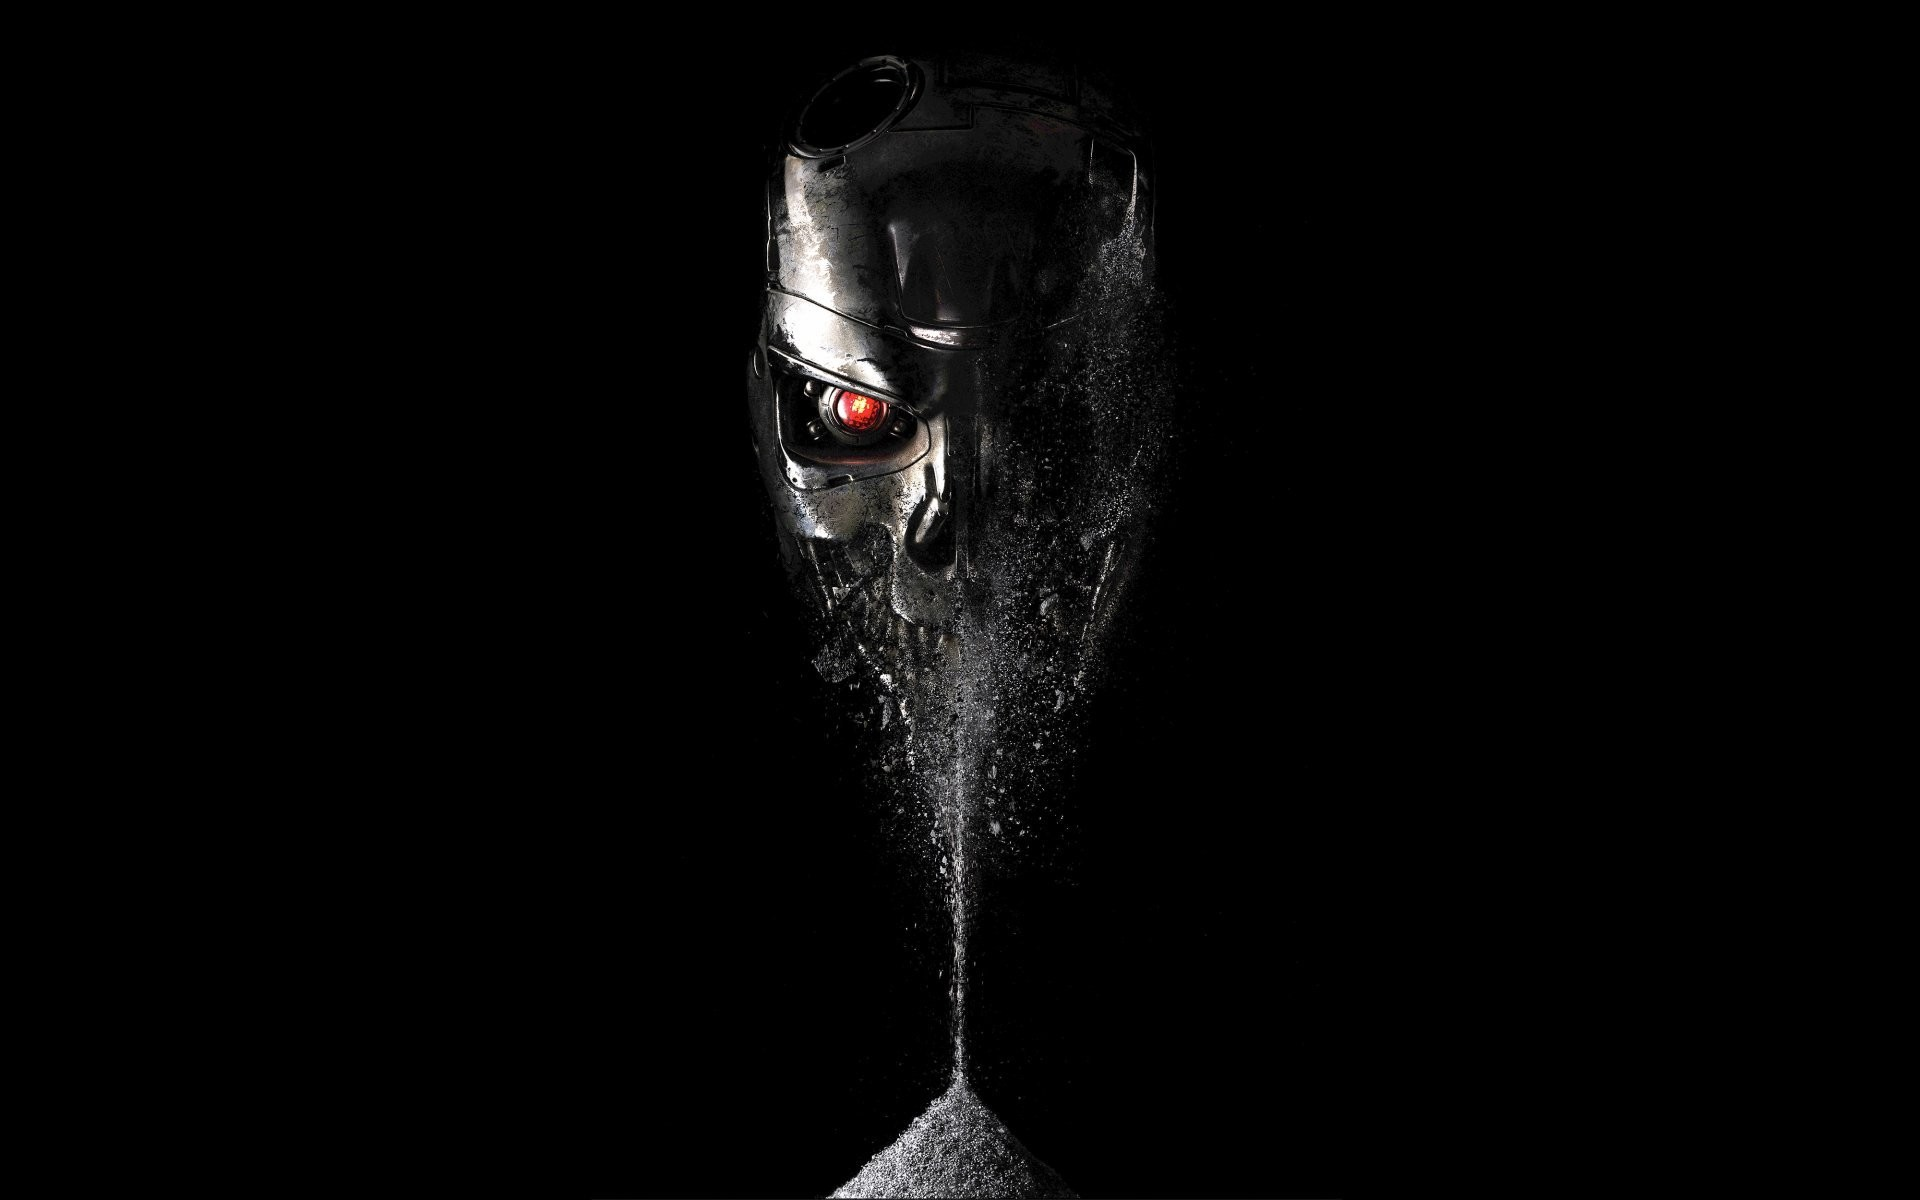 1920x1200 terminator : genesis terminator: genisys black background skull eye red  terminator fray ashes fiction